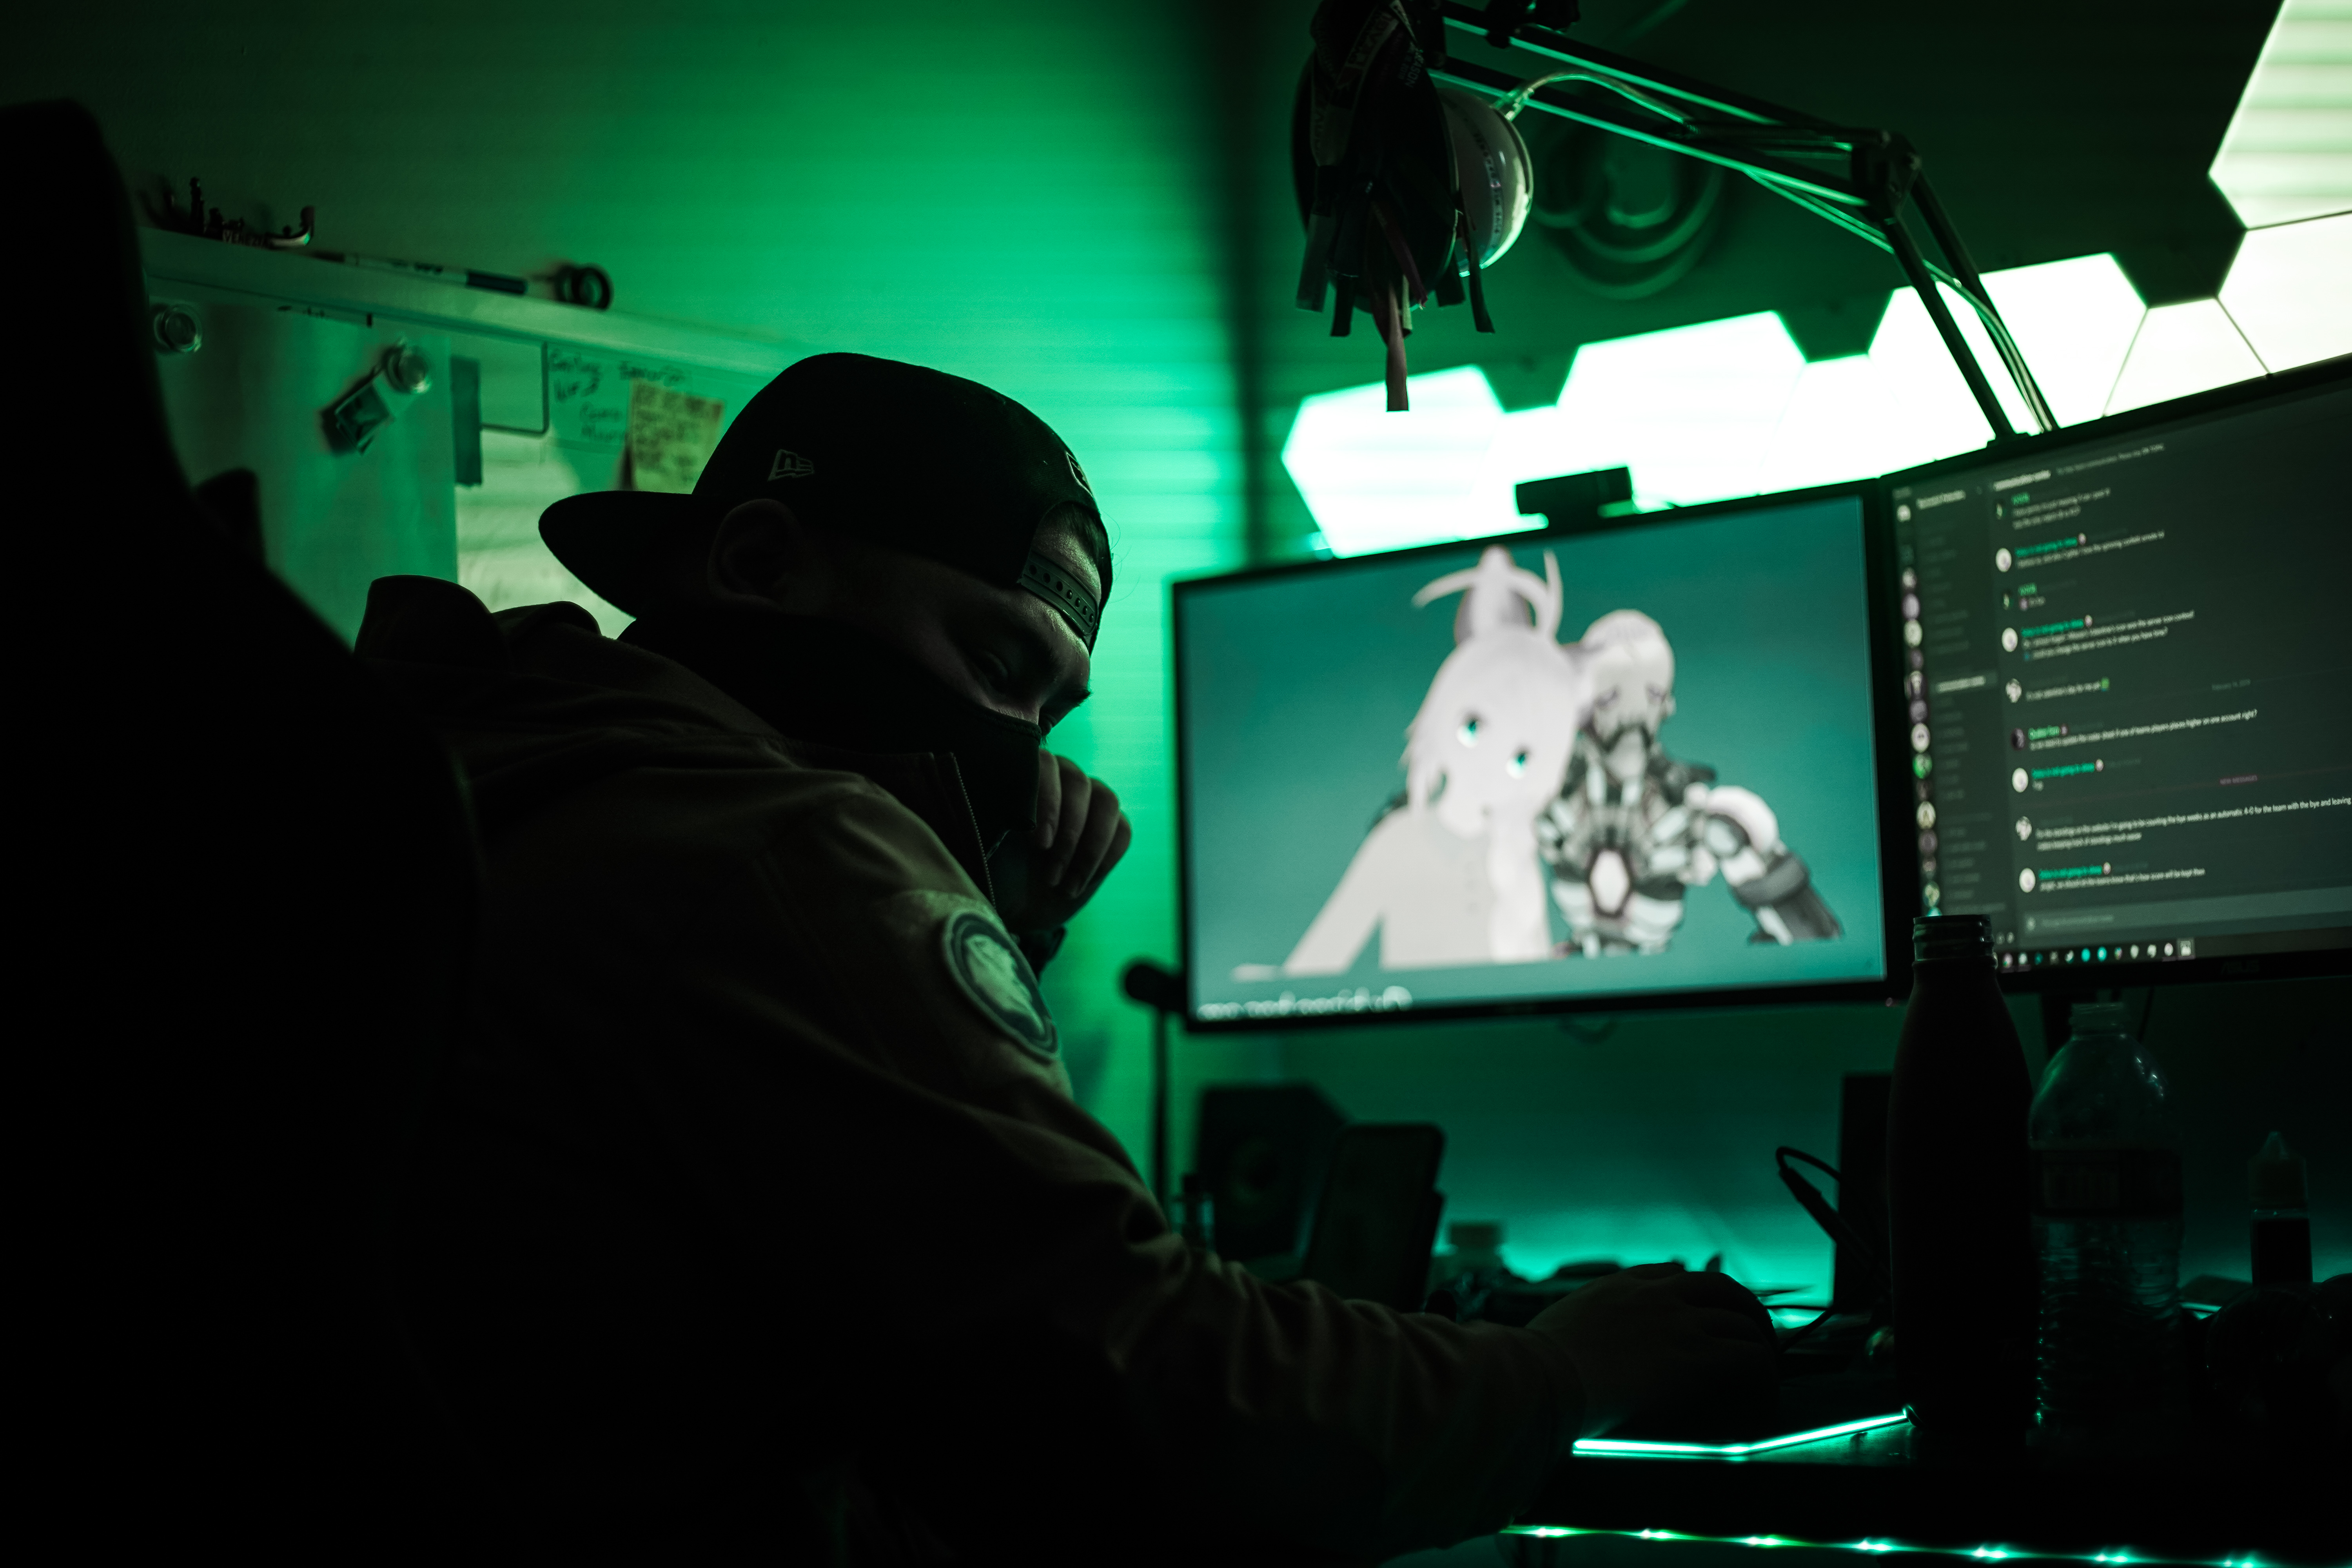 Gamer wearing a mask looks away from glowing computer and light panels.